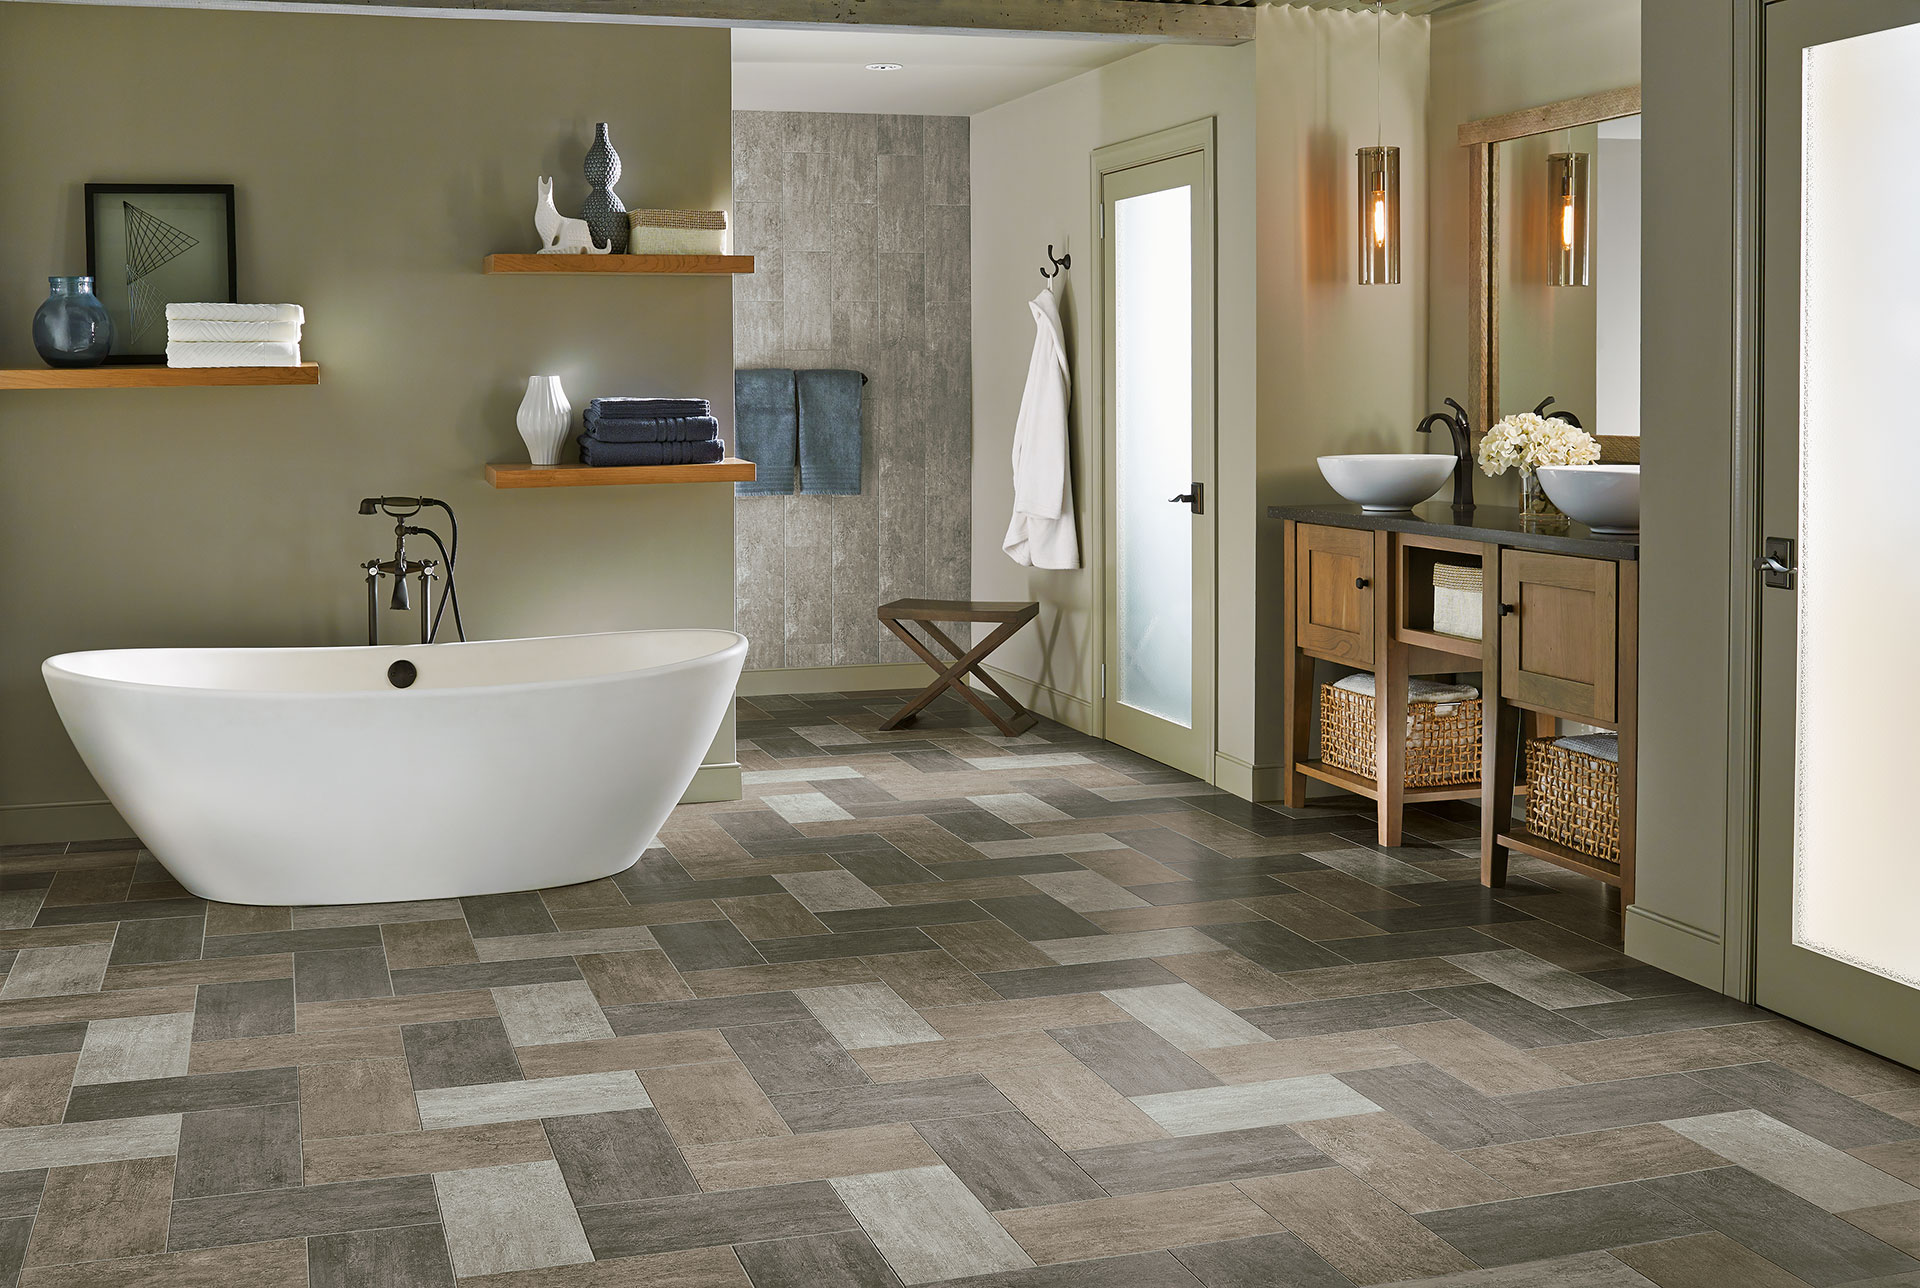 Bathroom floor vinyl tiles - Bathroom Floor Vinyl Tiles 41